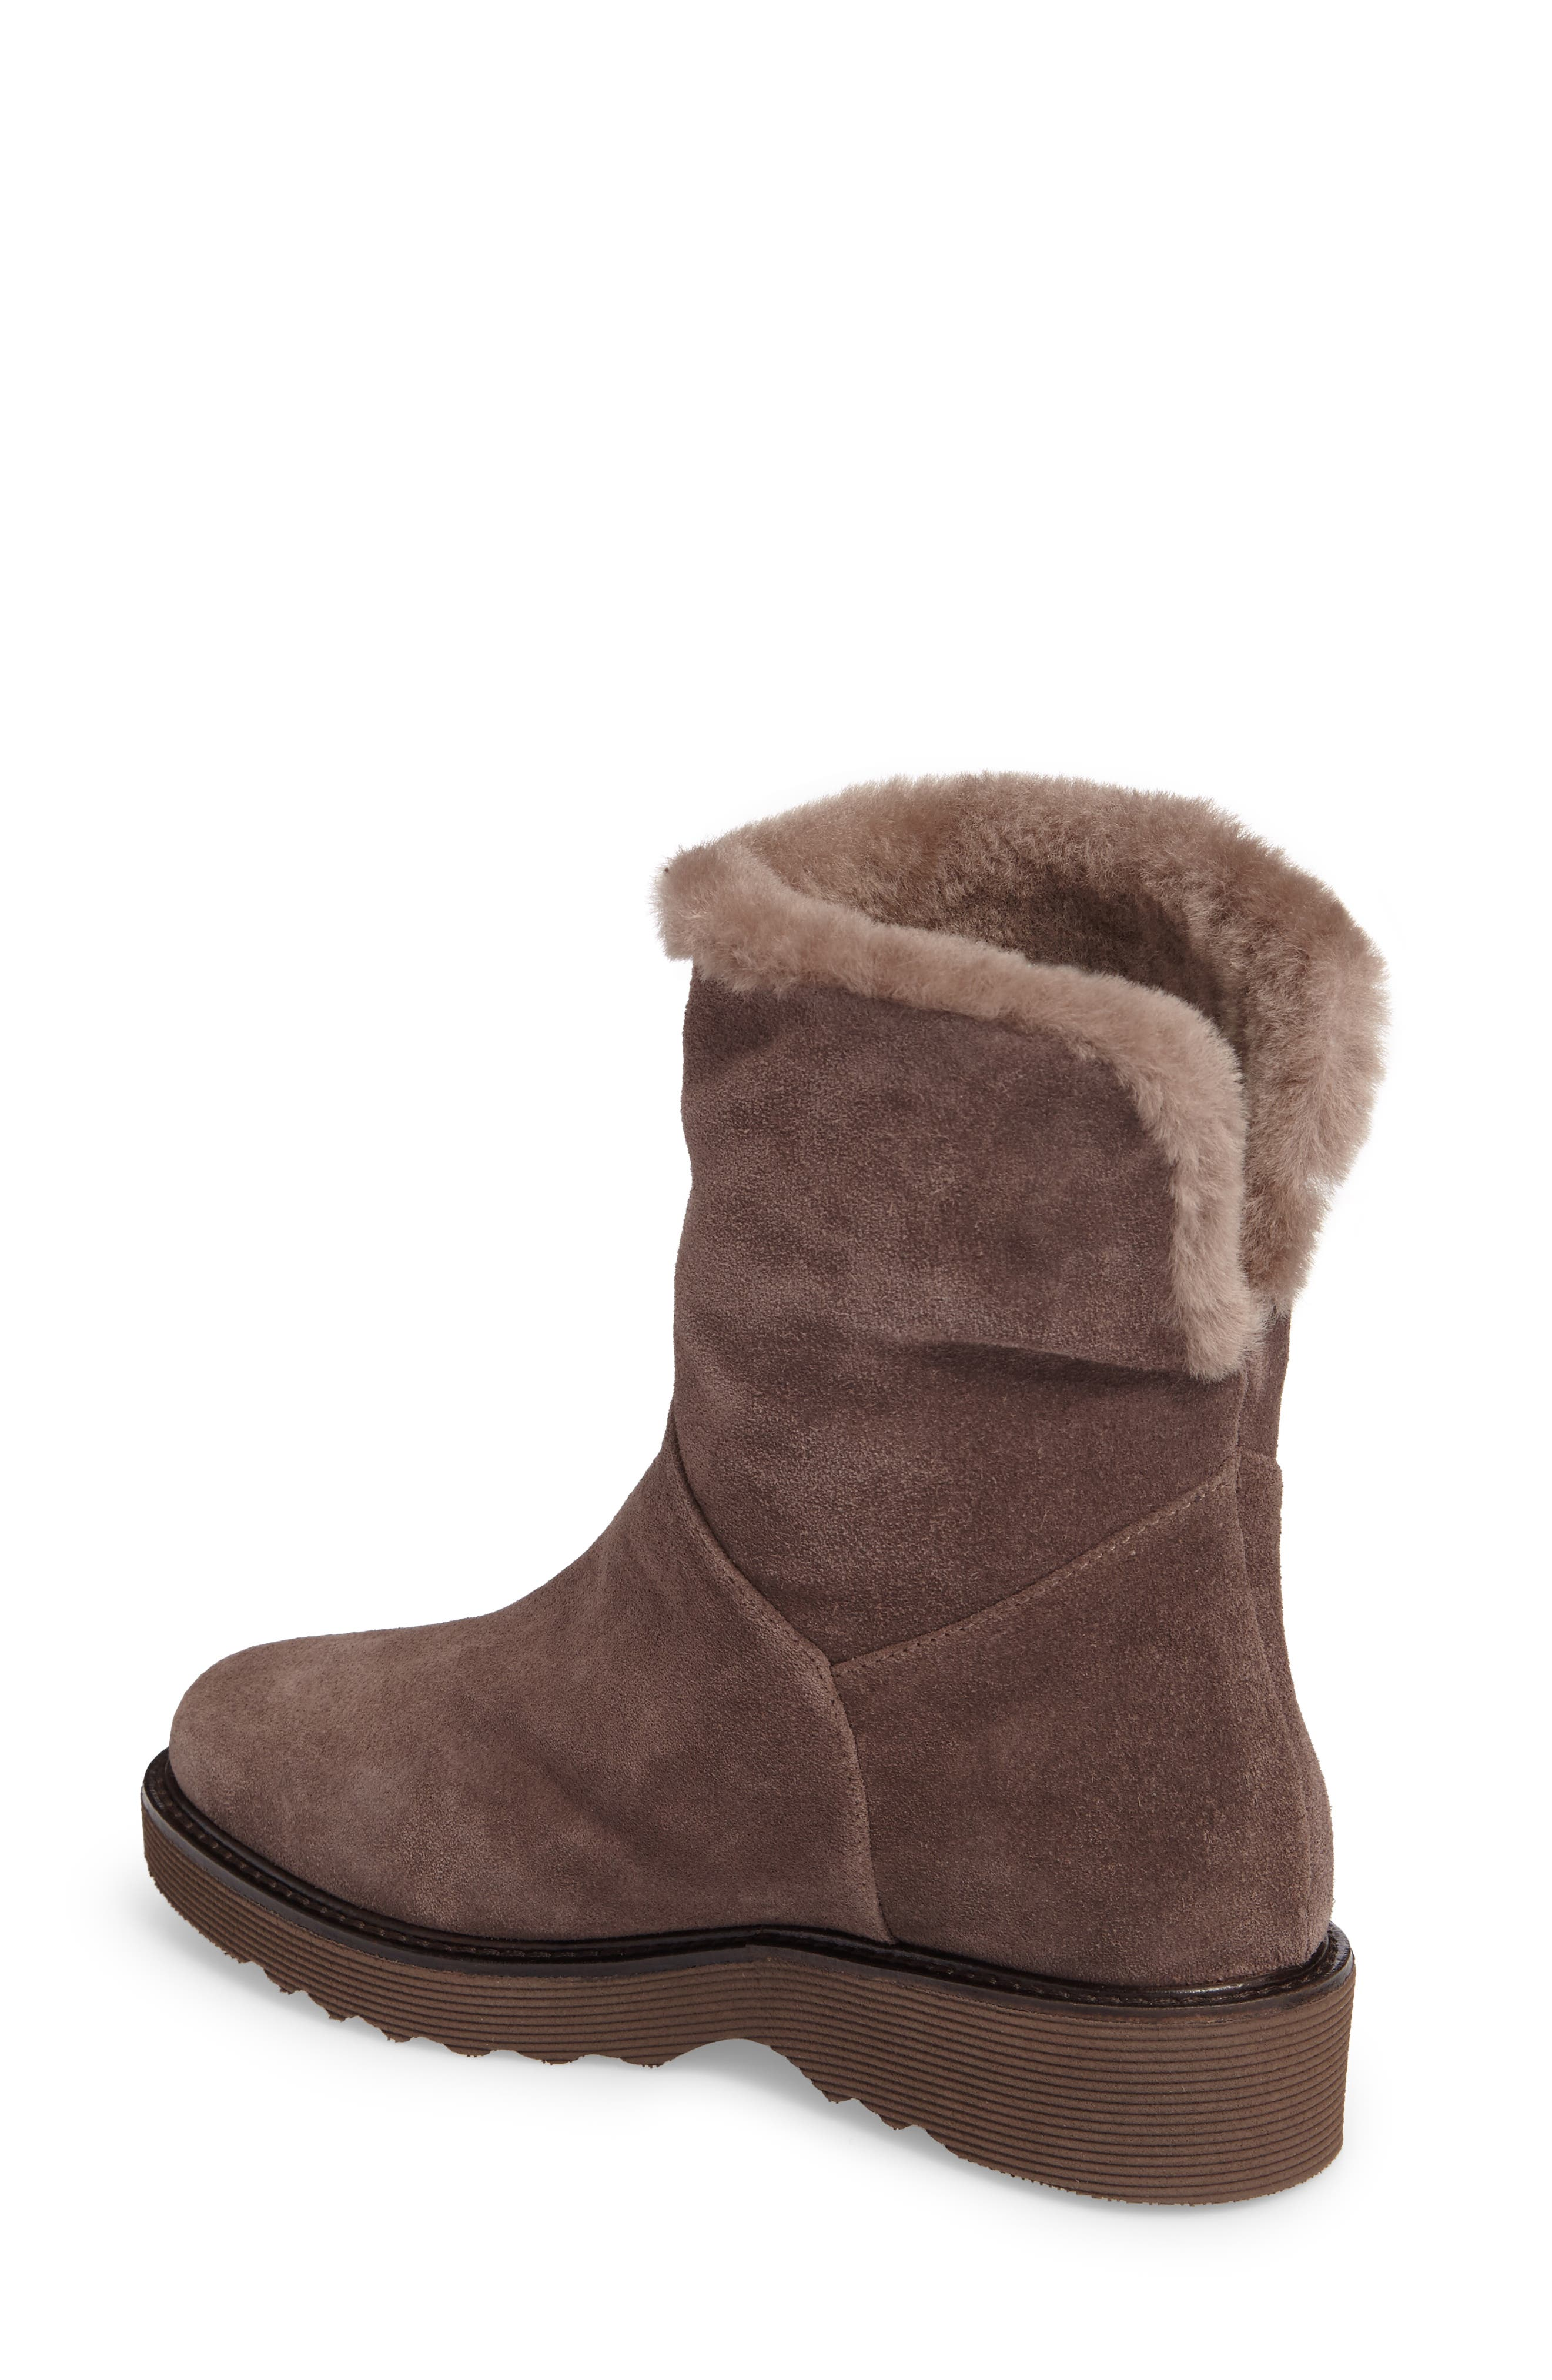 Kimberly Weatherproof Genuine Shearling Bootie,                             Alternate thumbnail 7, color,